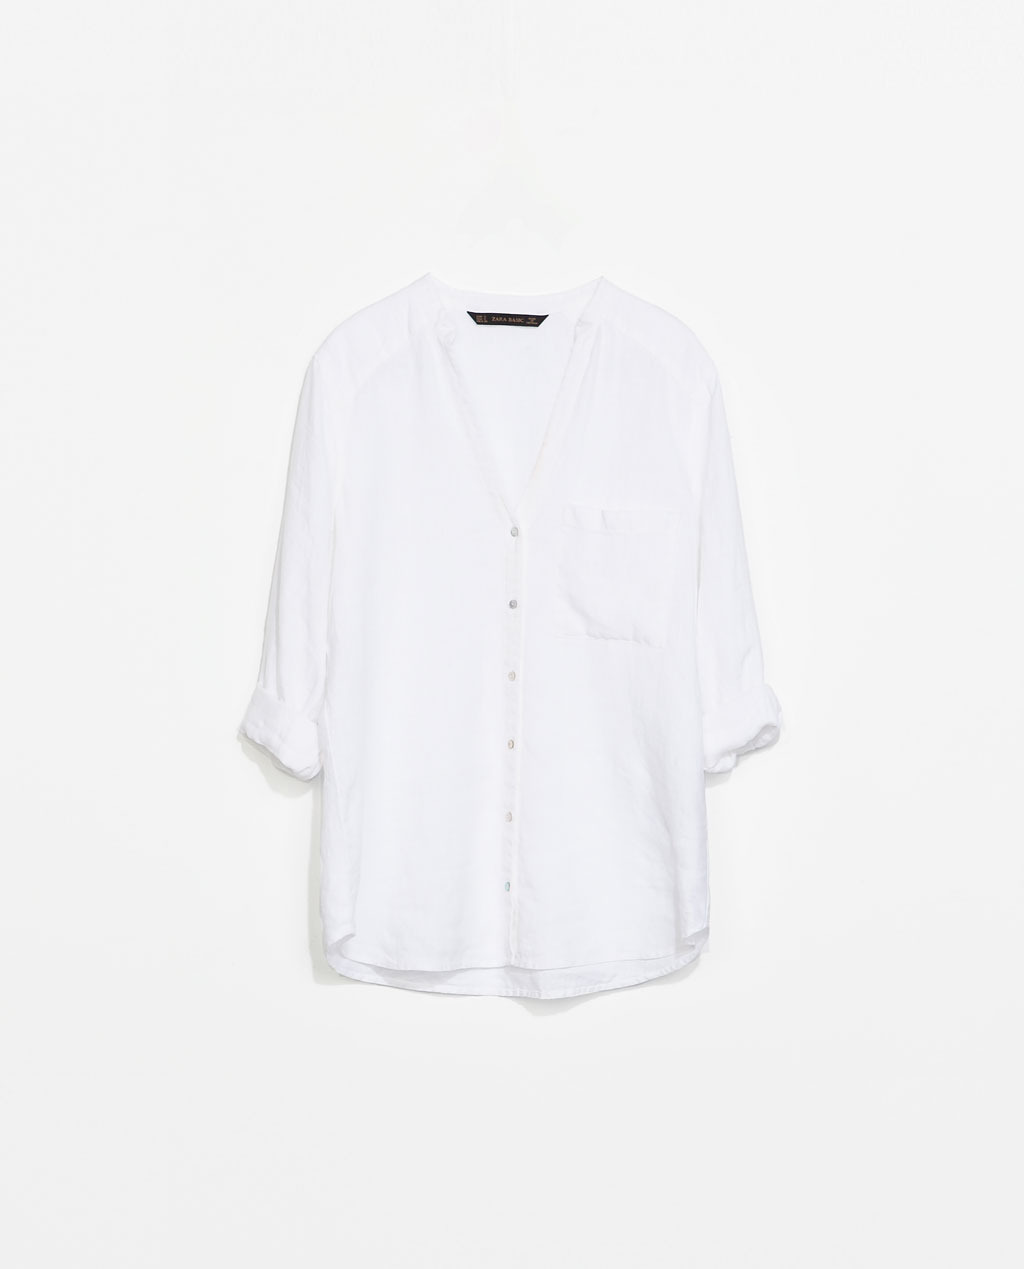 Linen Shirt - pattern: plain; length: below the bottom; style: shirt; predominant colour: white; occasions: casual, creative work; neckline: collarstand & mandarin with v-neck; fibres: linen - 100%; fit: loose; sleeve length: 3/4 length; sleeve style: standard; texture group: linen; pattern type: fabric; season: s/s 2014